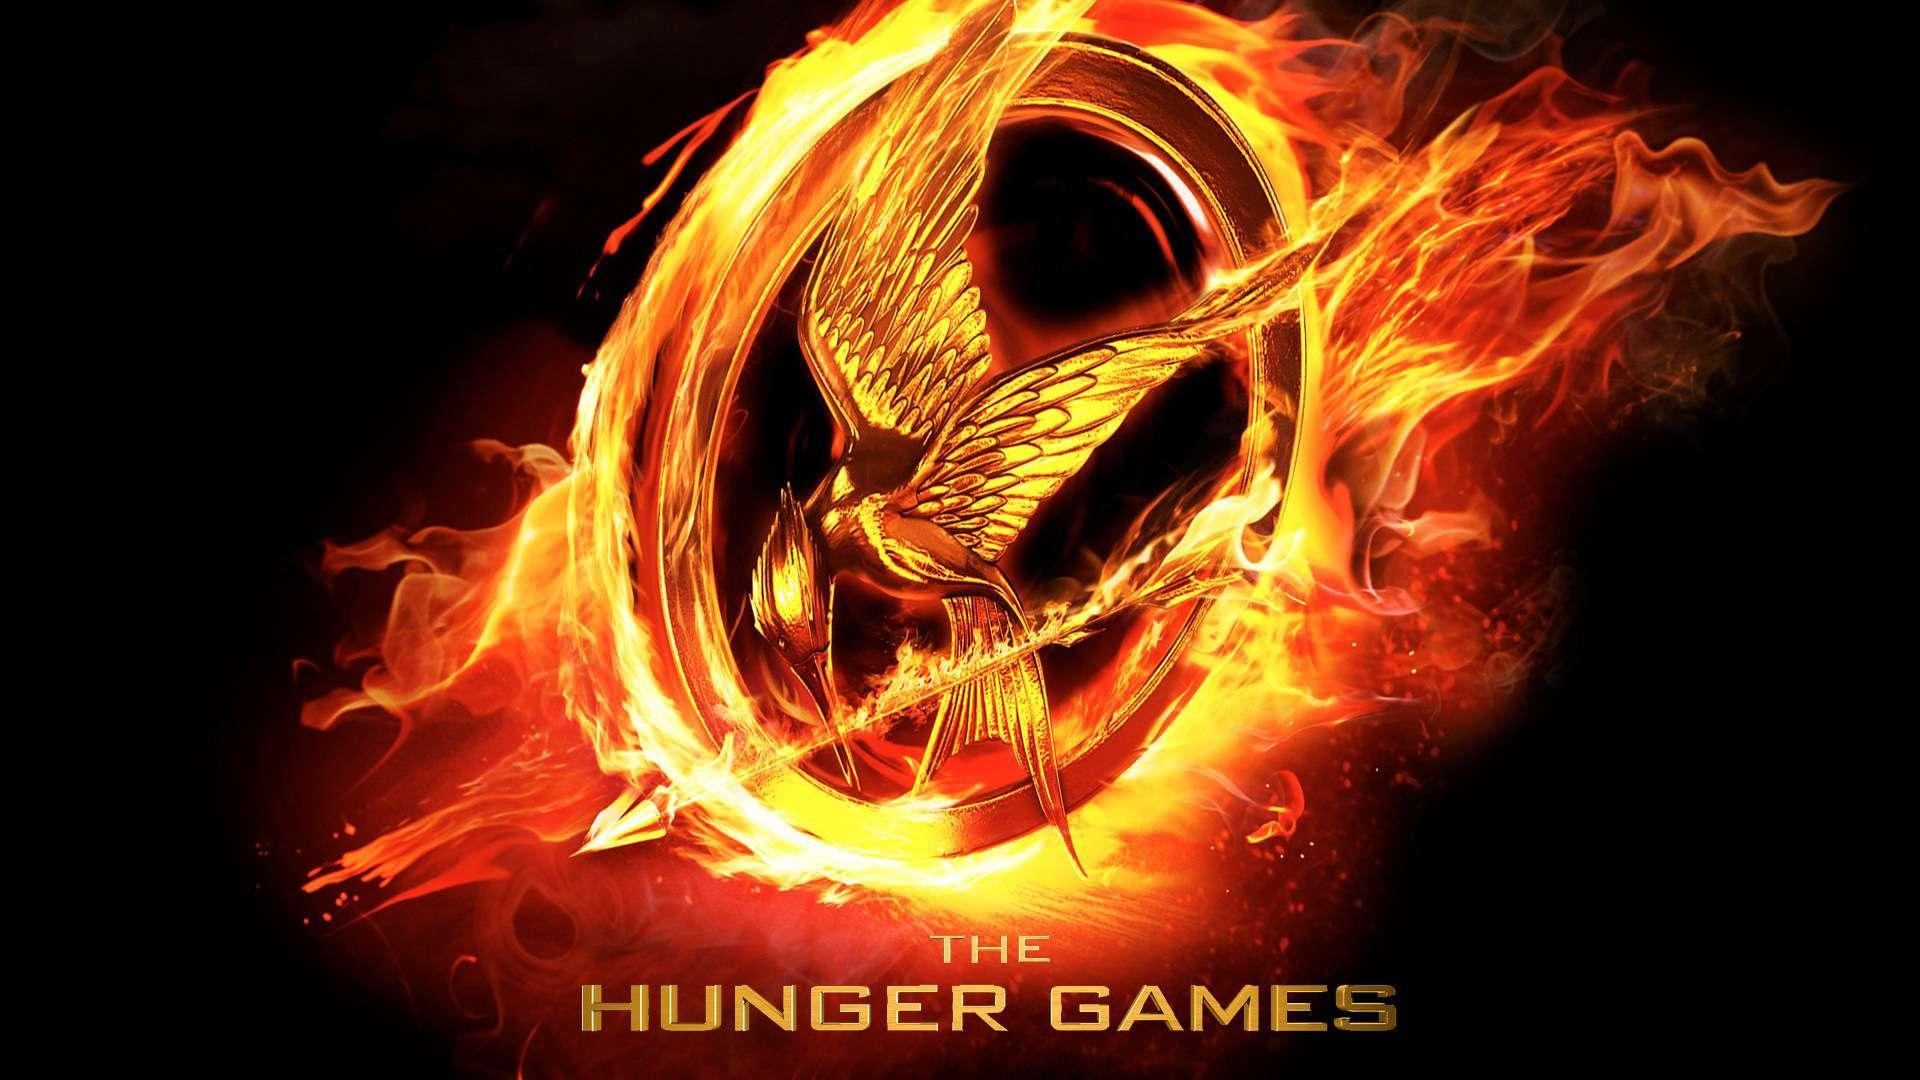 Which do you like more about Hunger Games: Movie or Book?